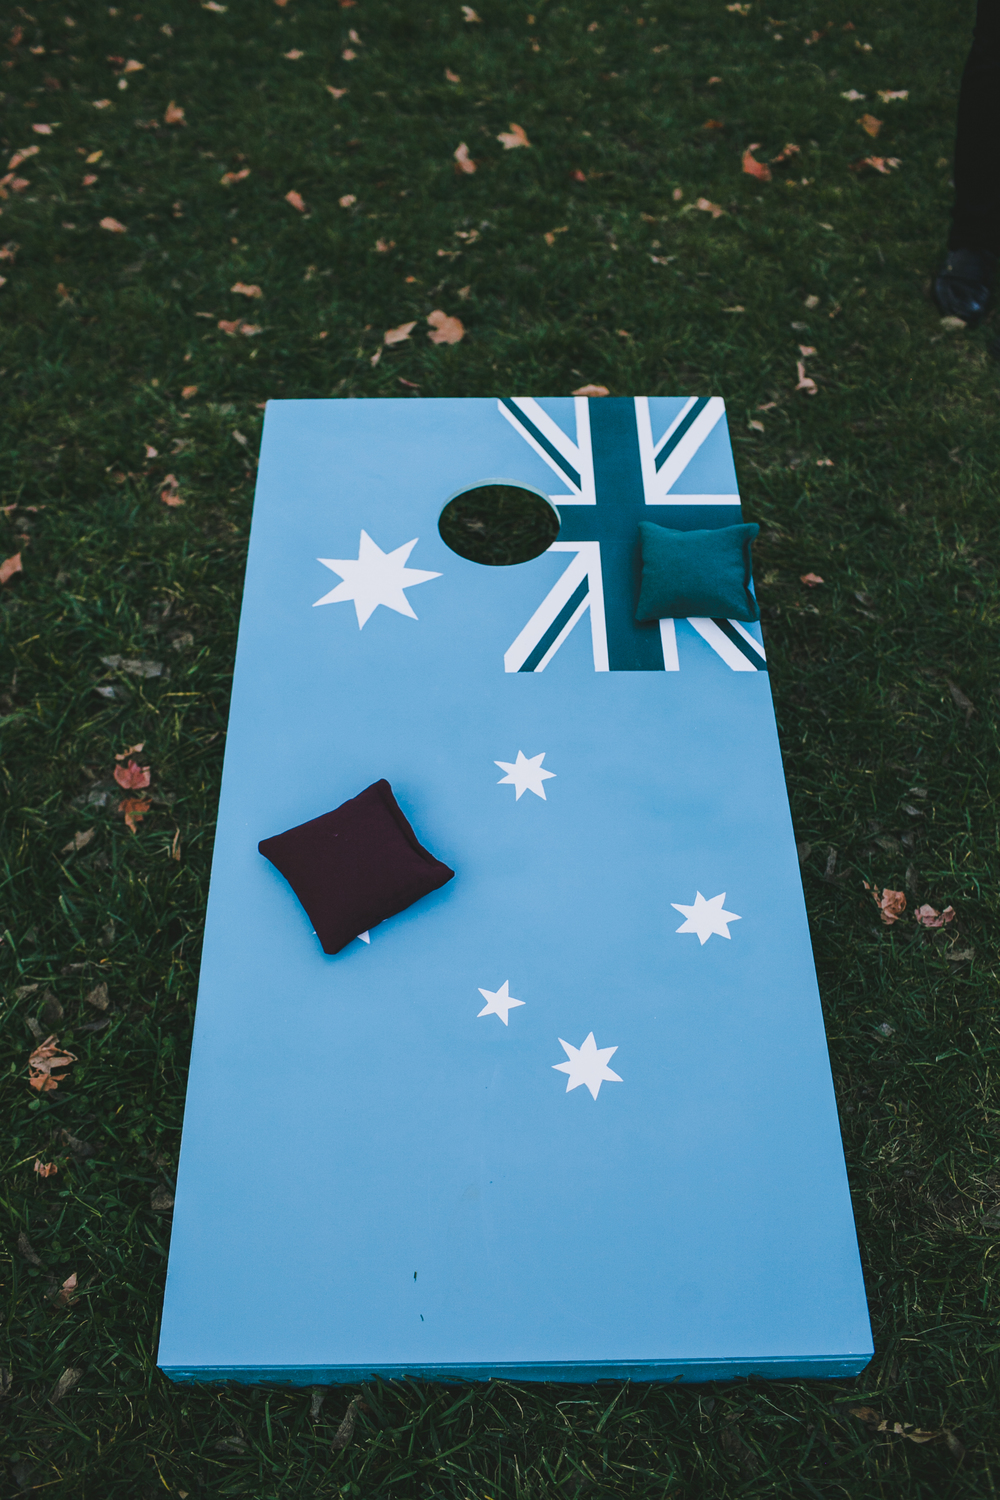 Kneale_Wedding_Cornhole_Australia_Flag